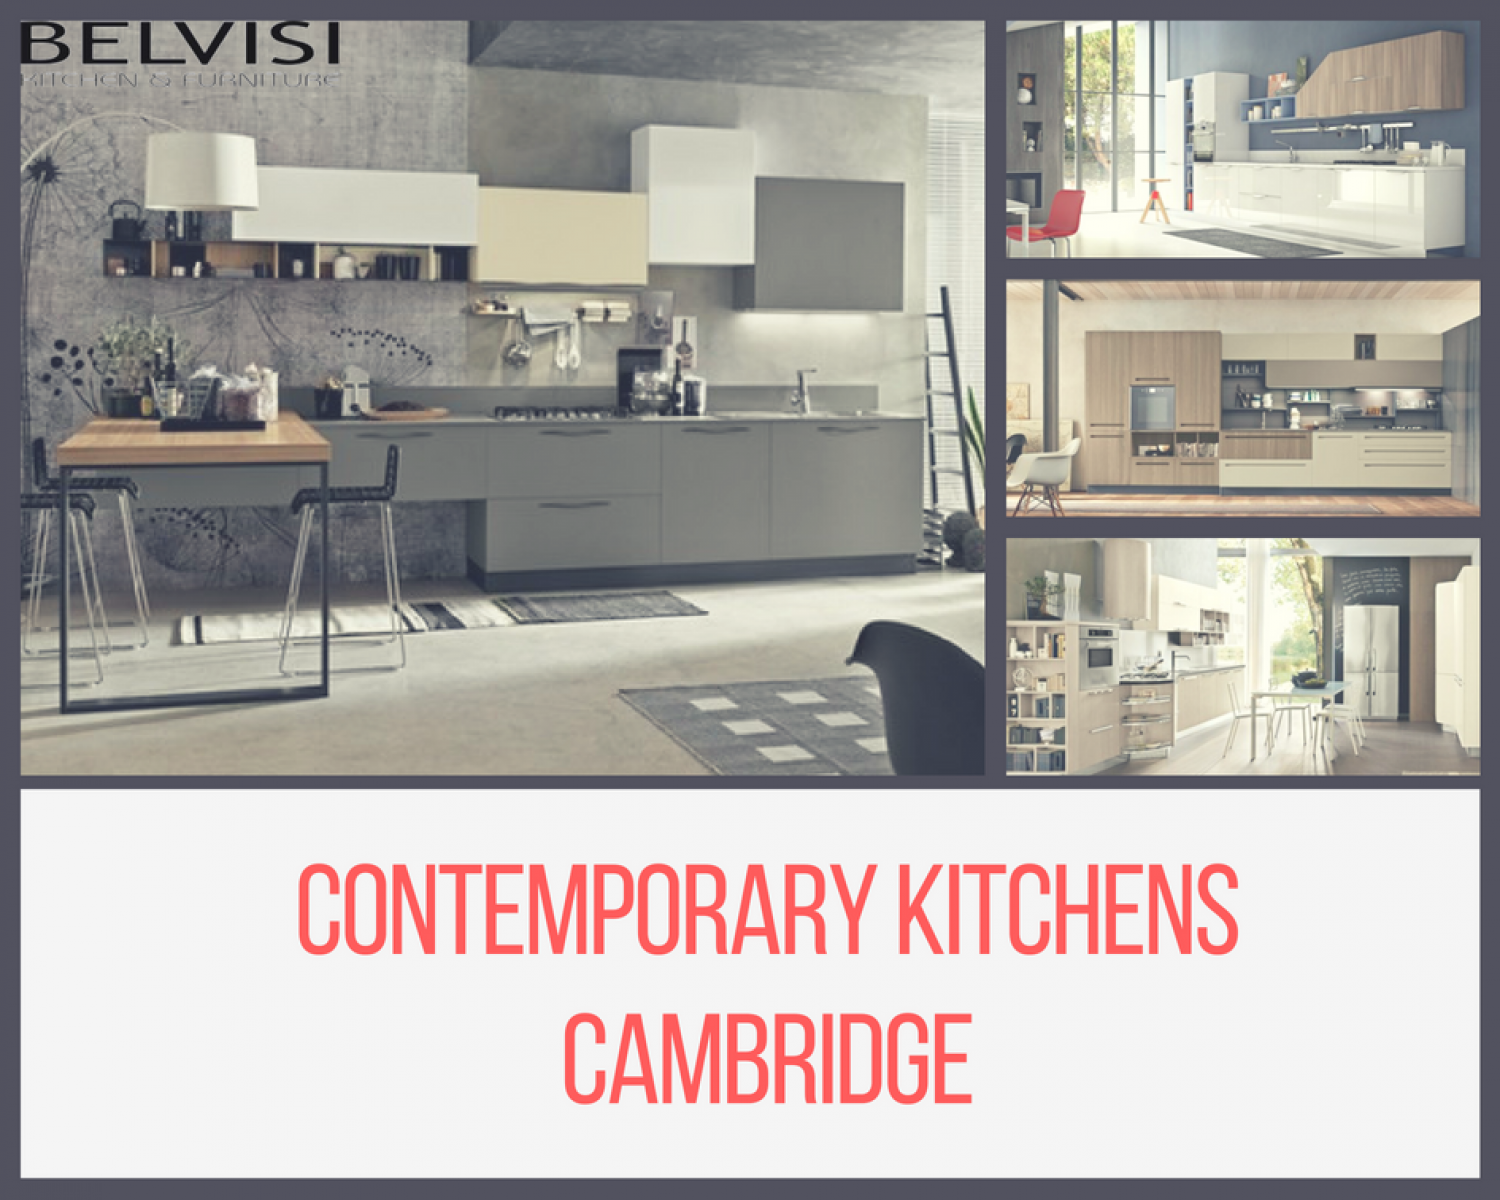 Contemporary kitchens Cambridge Infographic